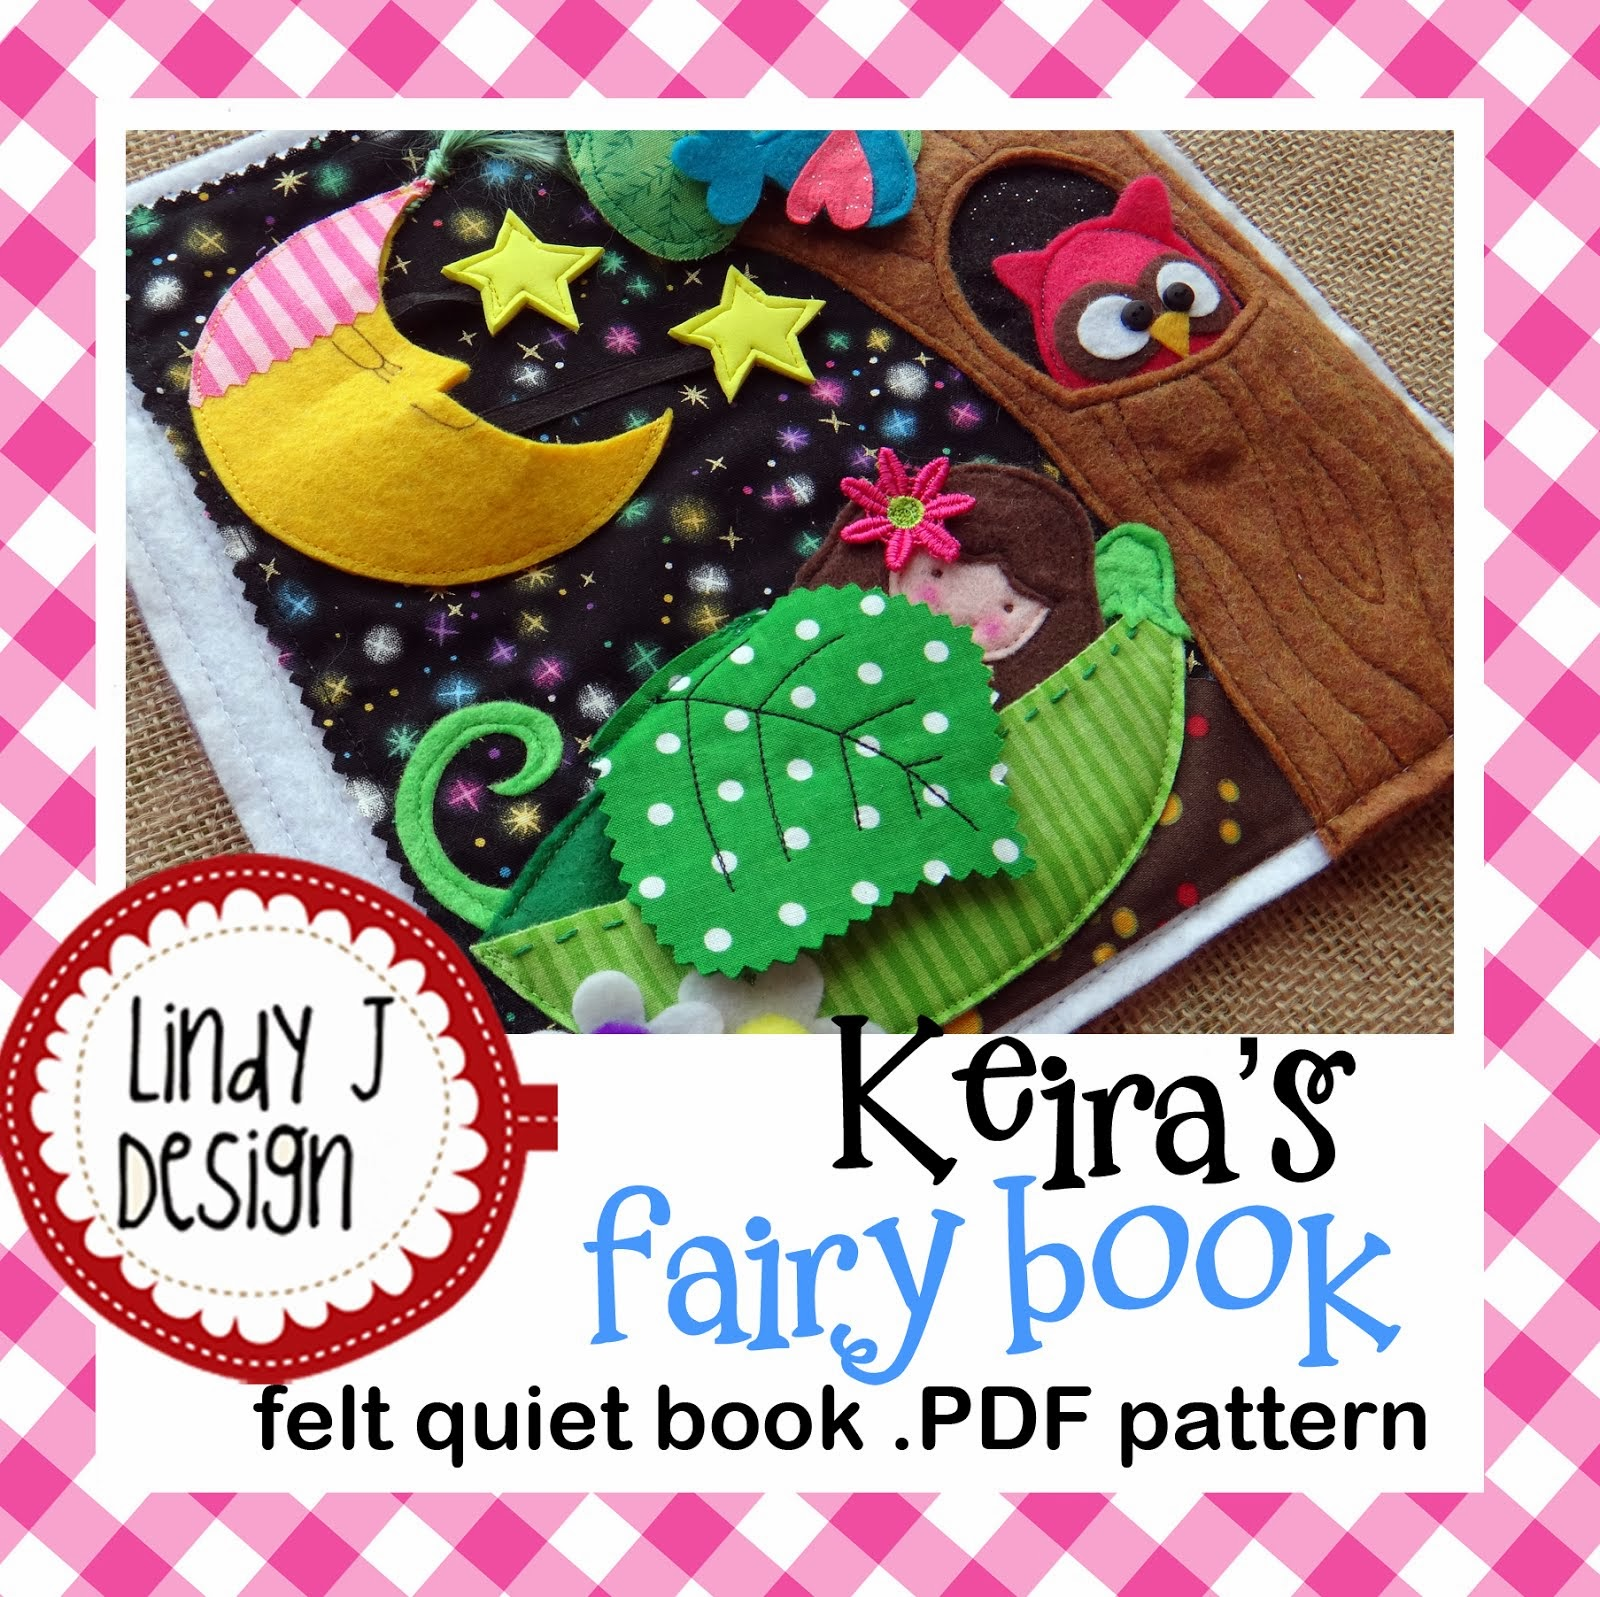 Keira's Fairy Book .PDF Pattern